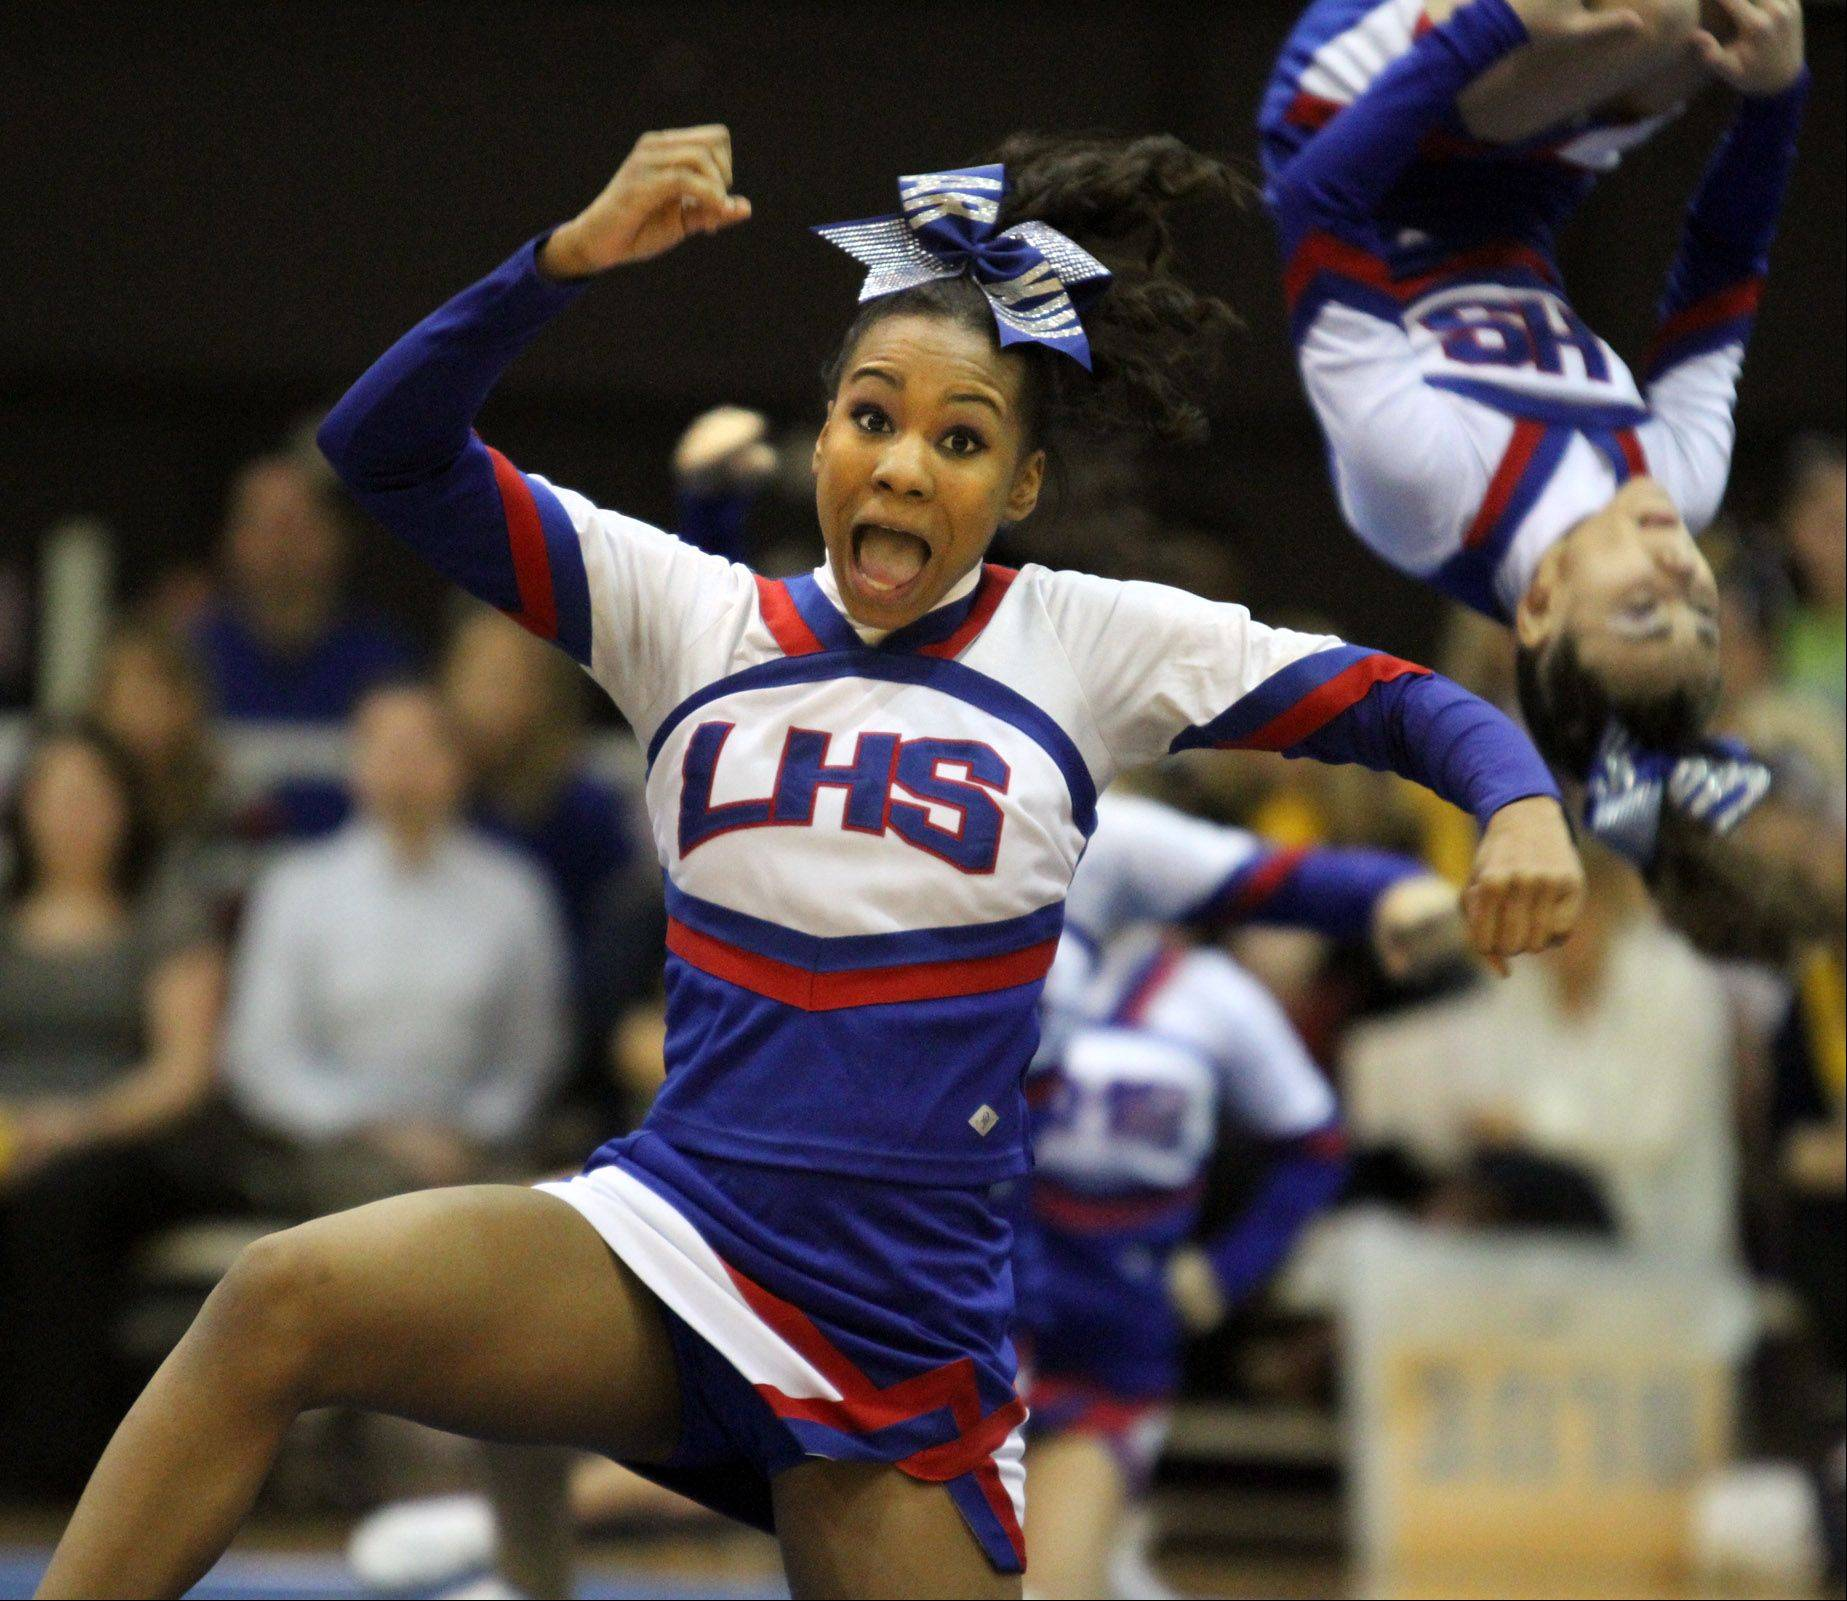 The Larkin High School cheerleading team performed at the IHSA competitive cheerleading sectionals held Saturday at Rolling Meadows High School.